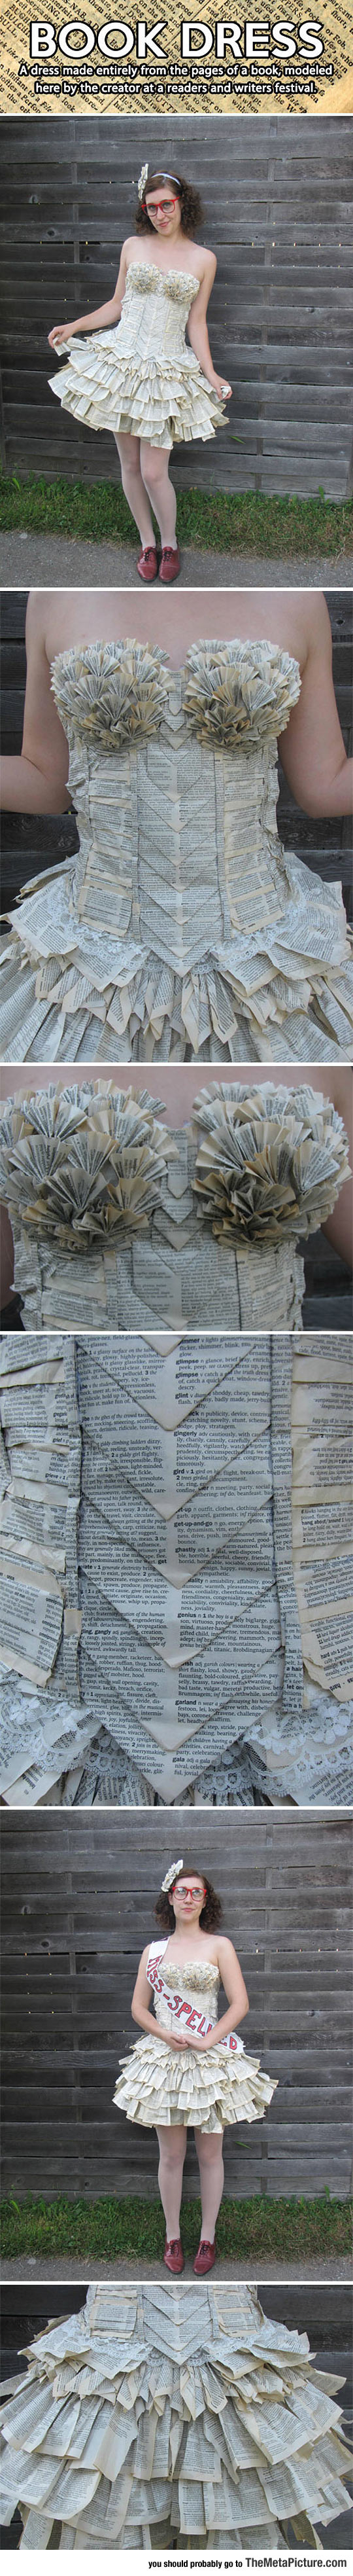 Made From Pages Of A Book